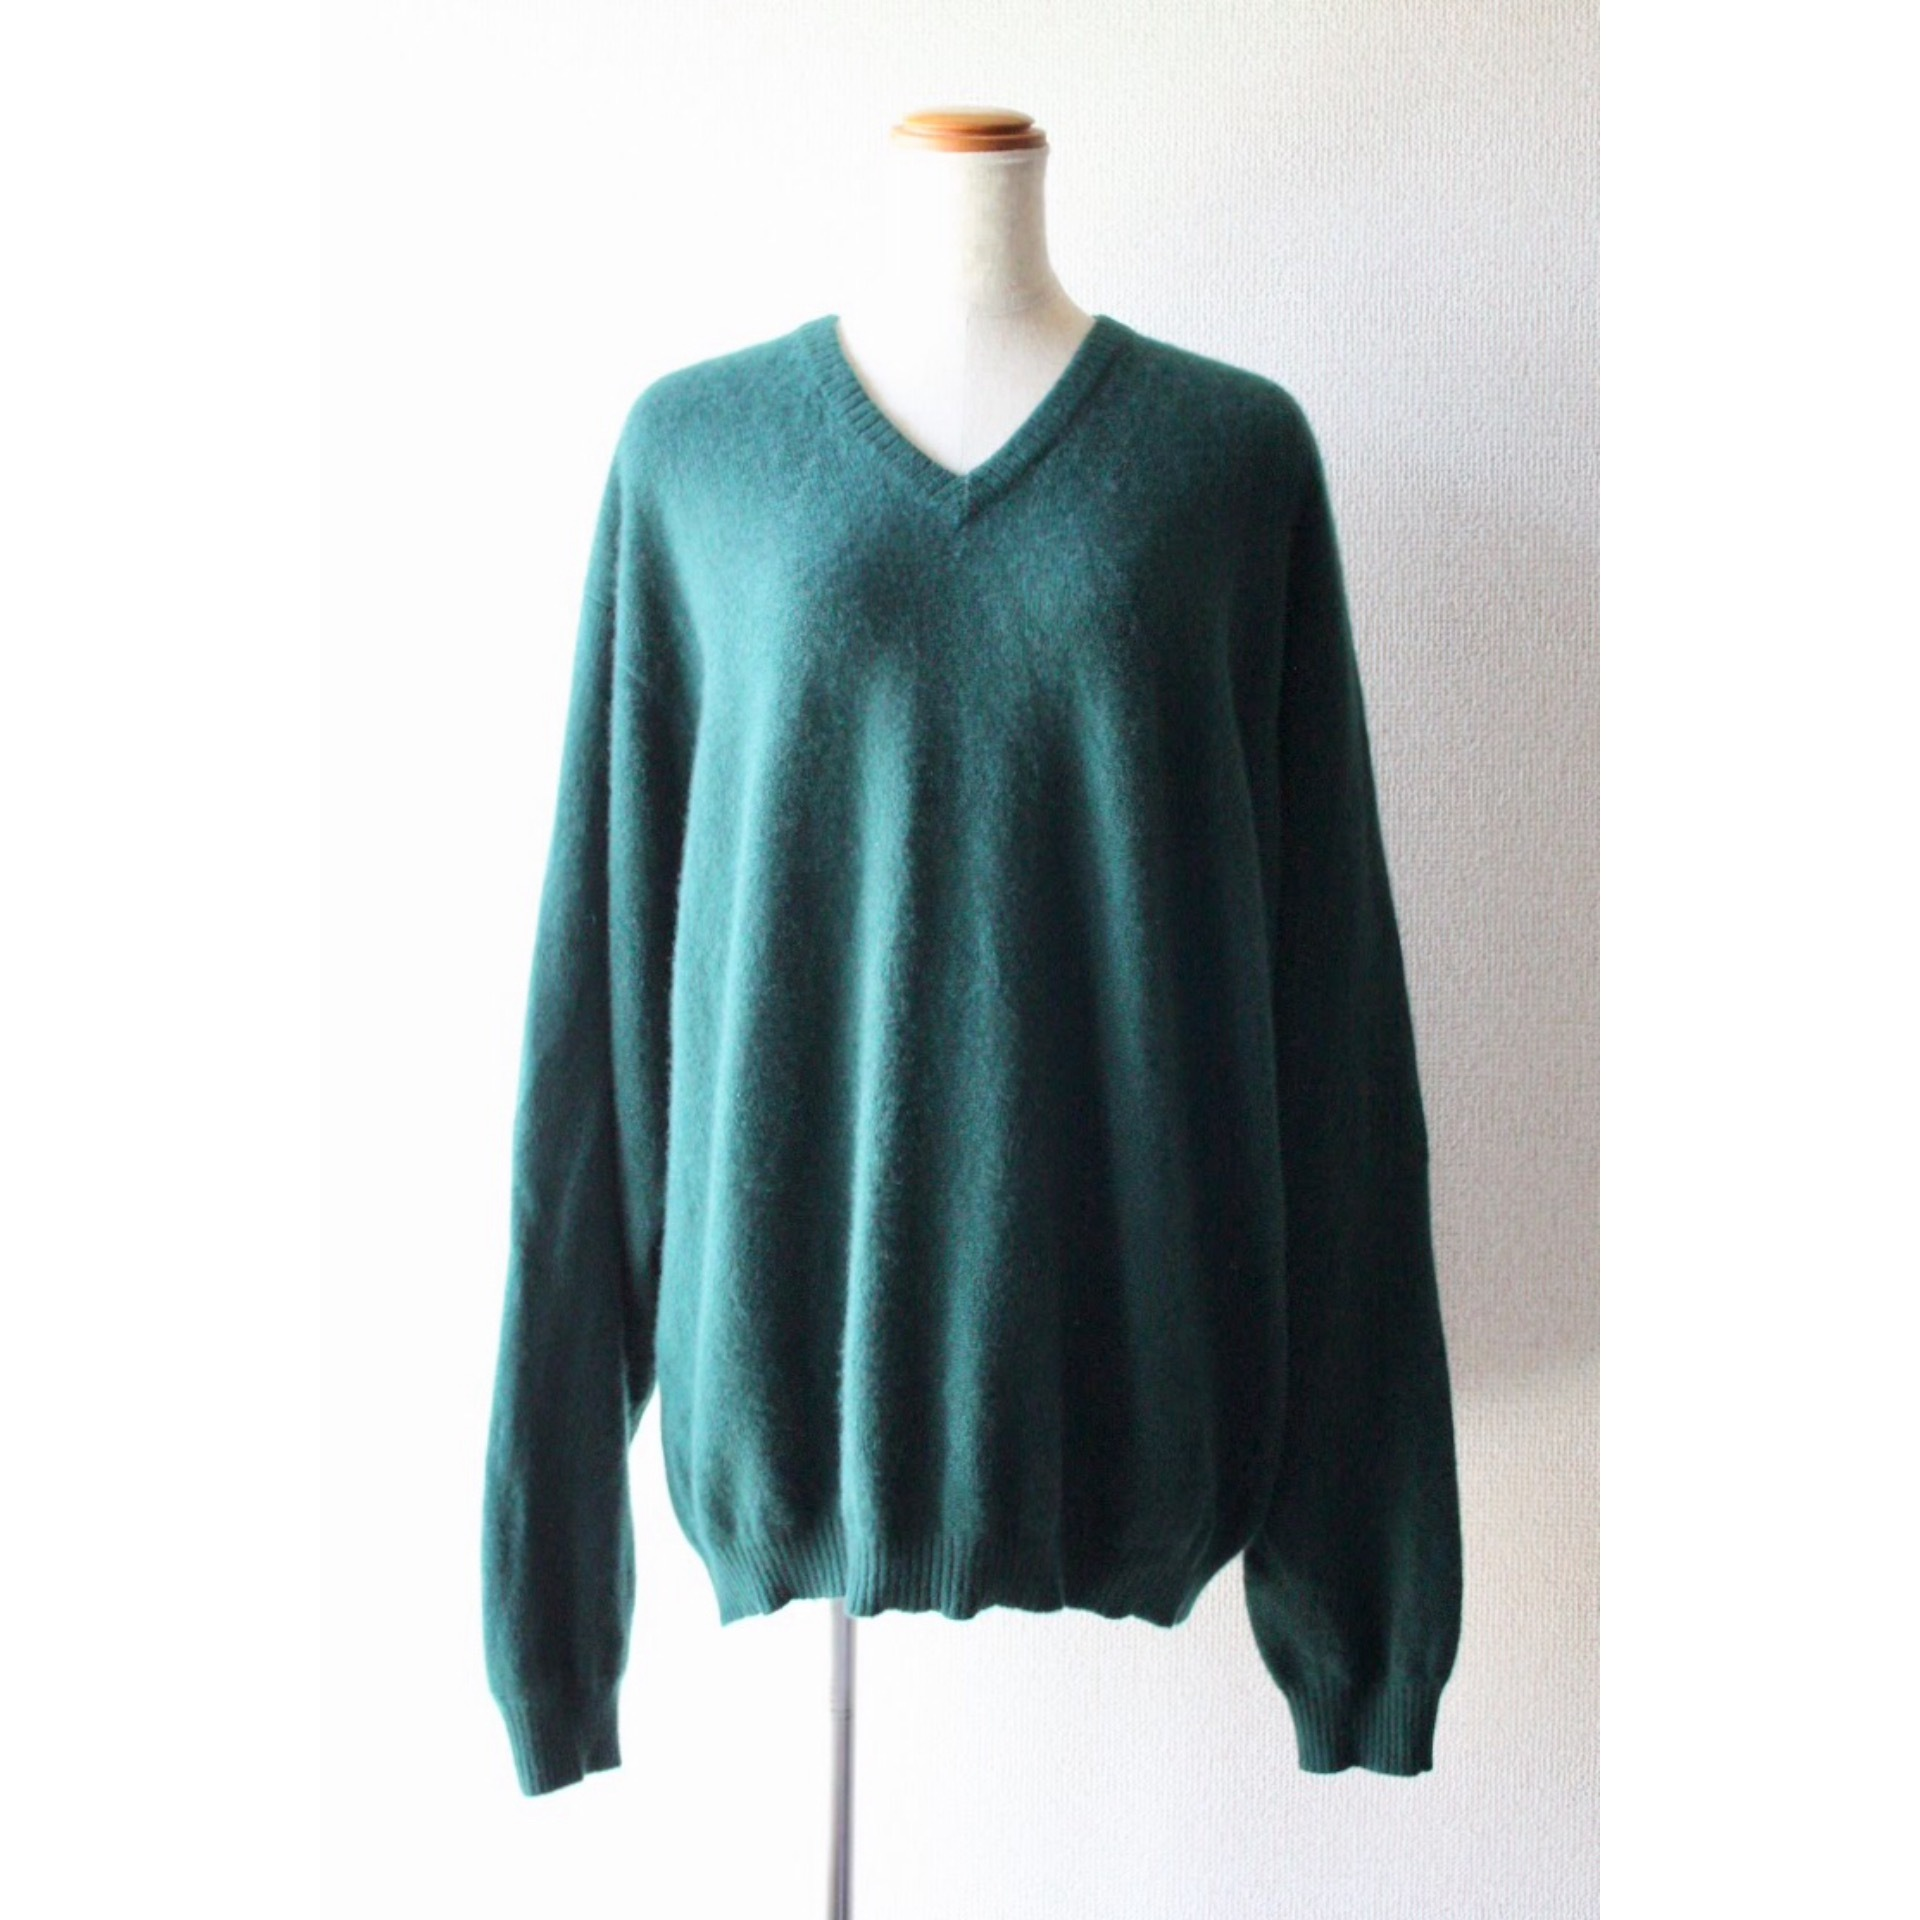 Vintage v neck cashmere sweater